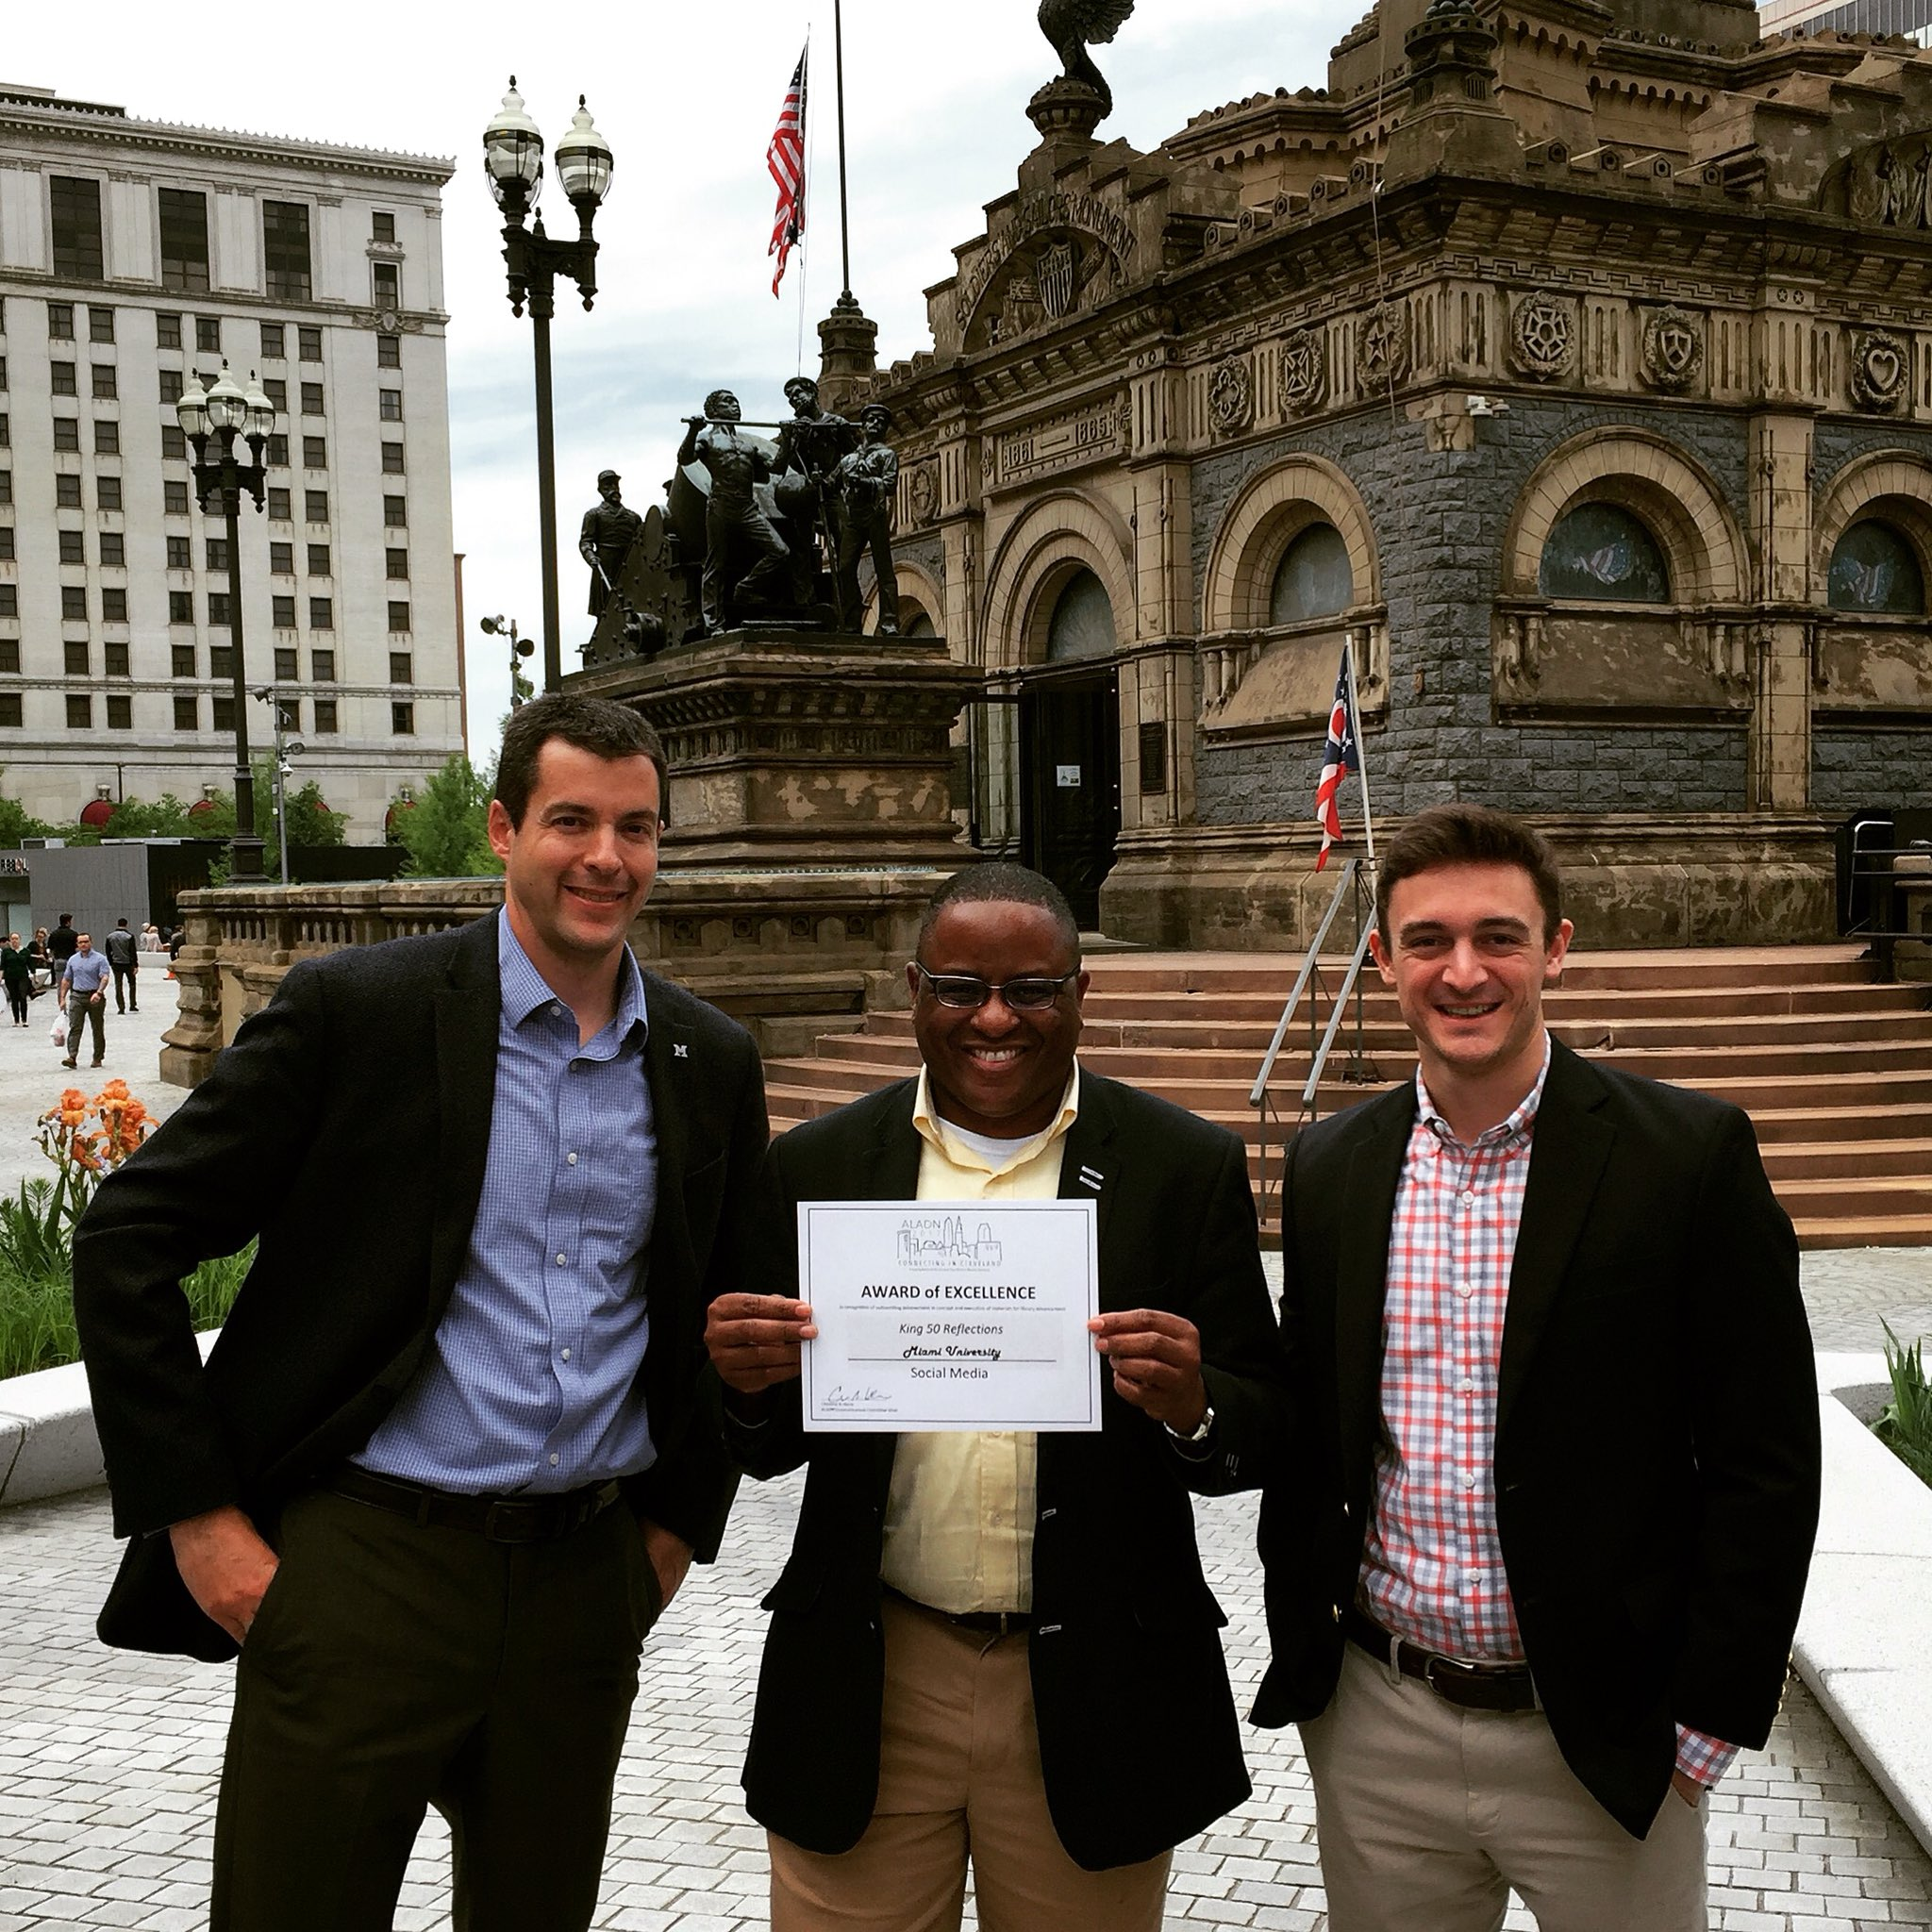 Vince Frieden, Jerome Conley, and David Mulford holding an Award of Excellence recognizing the 'King 50 Reflections'